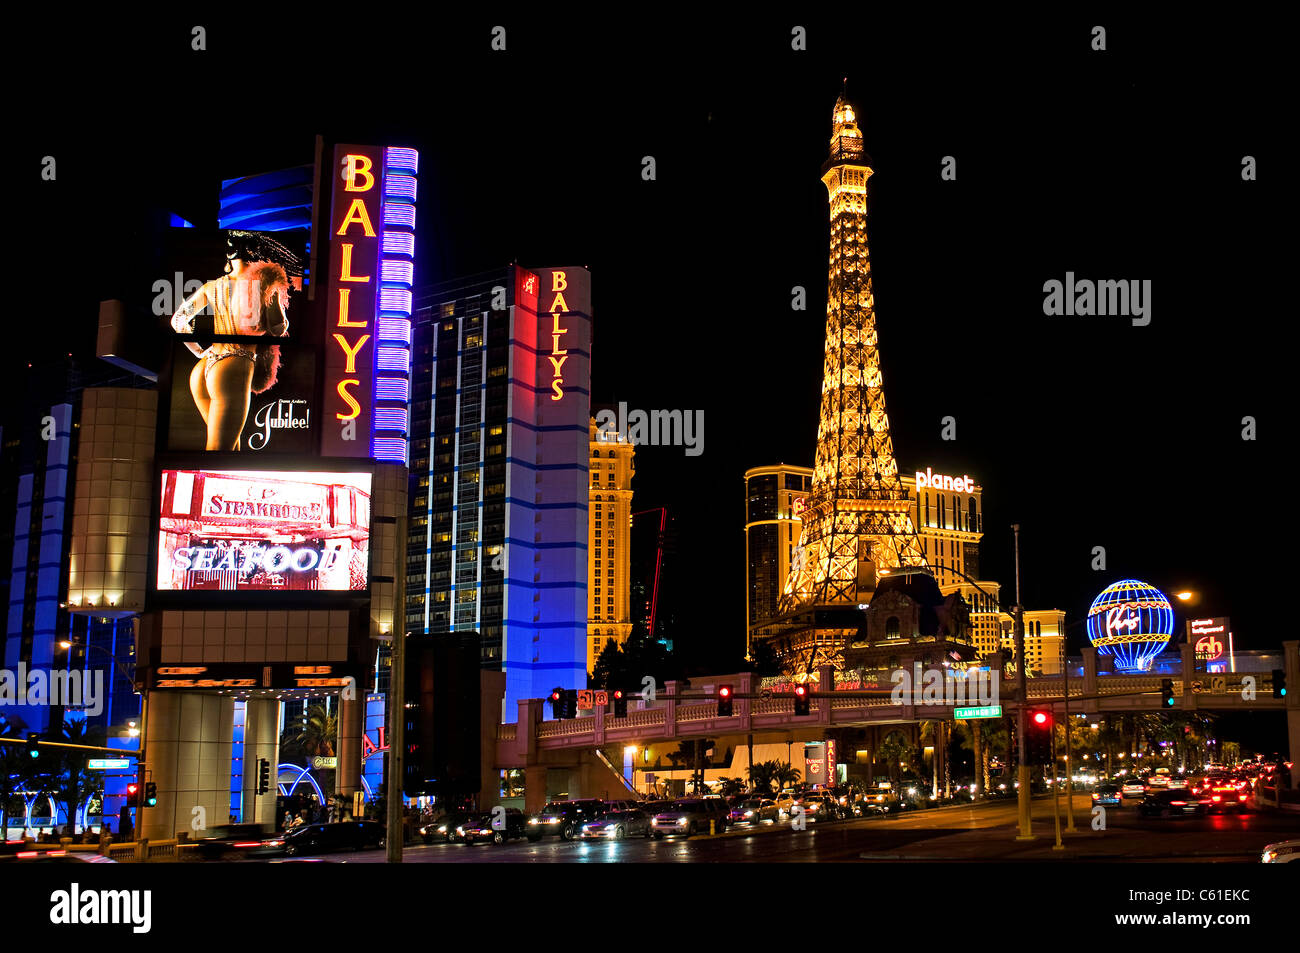 Las Vegas NV Nevada City Night Nighttime Stock Photo